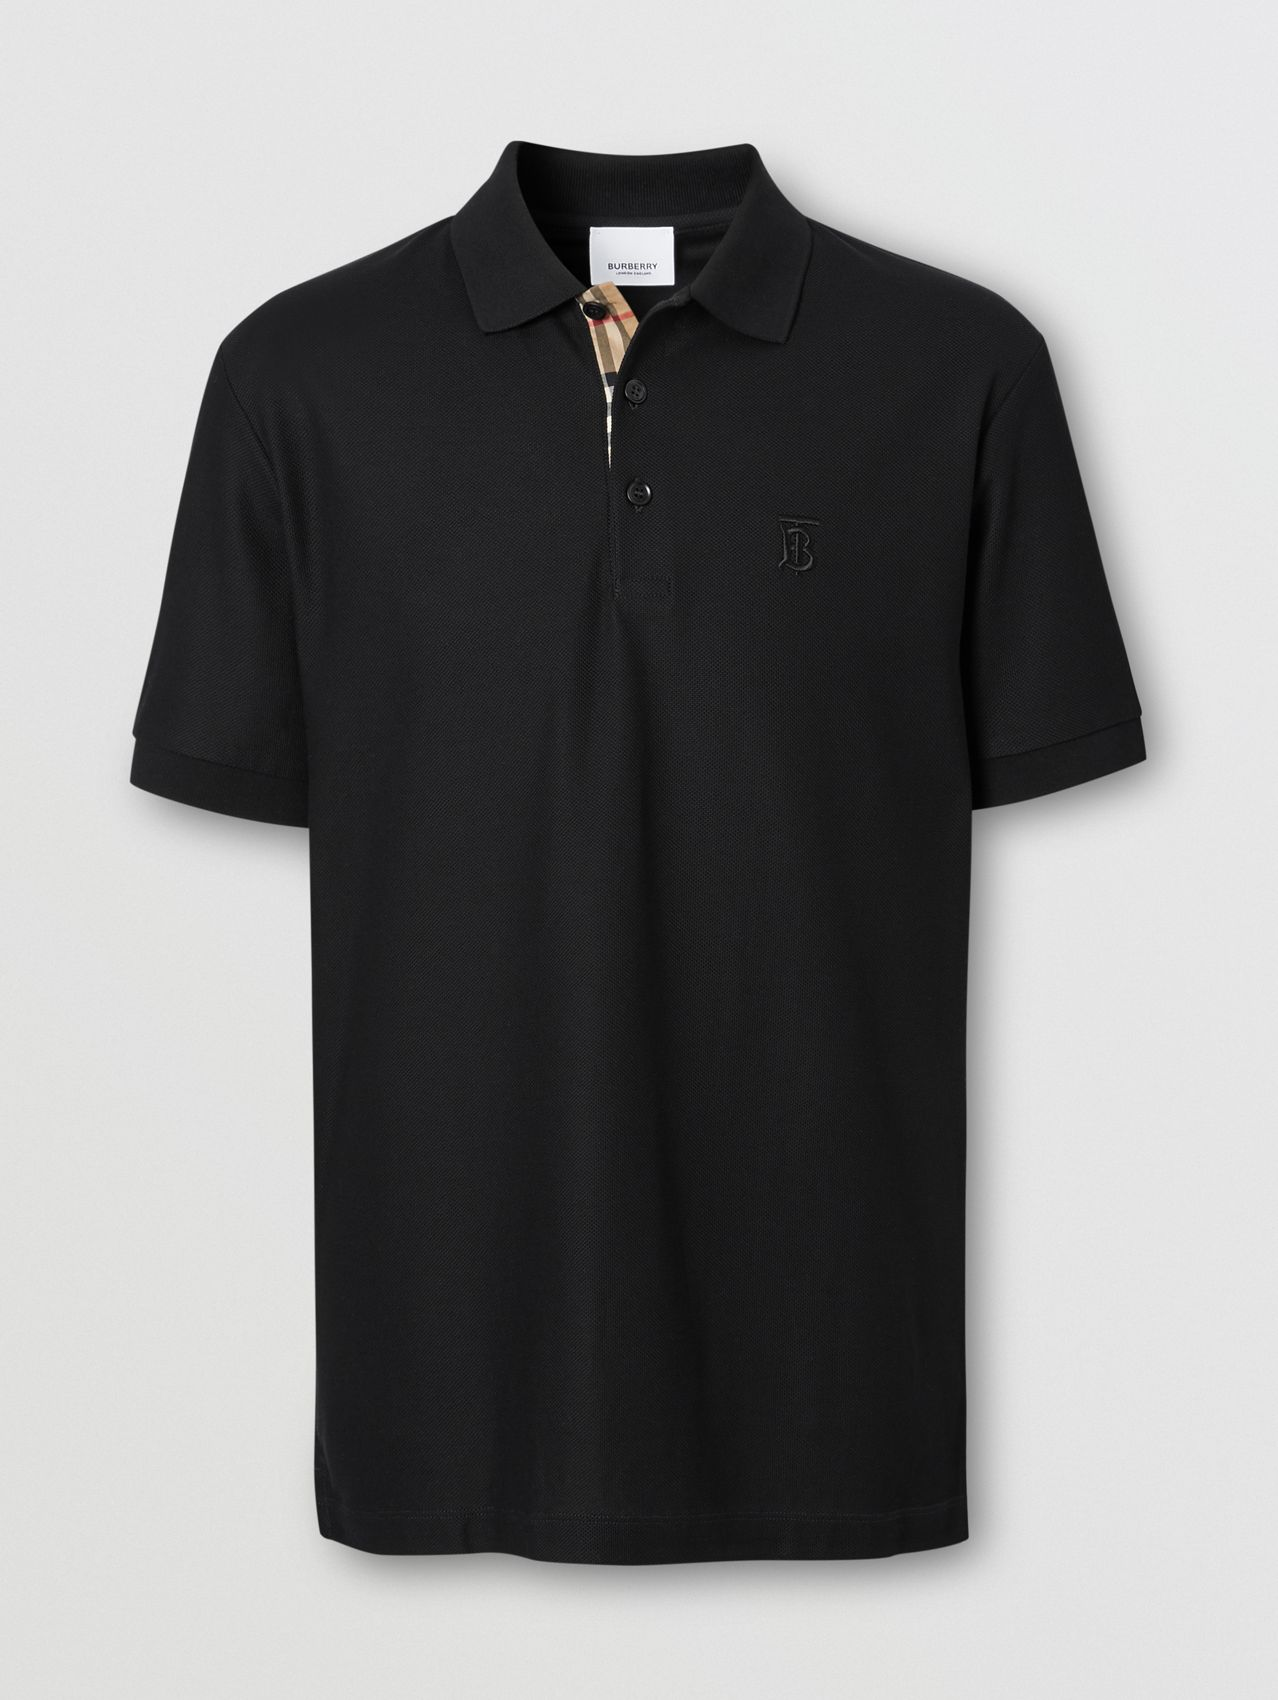 Monogram Motif Cotton Piqué Polo Shirt (Black)